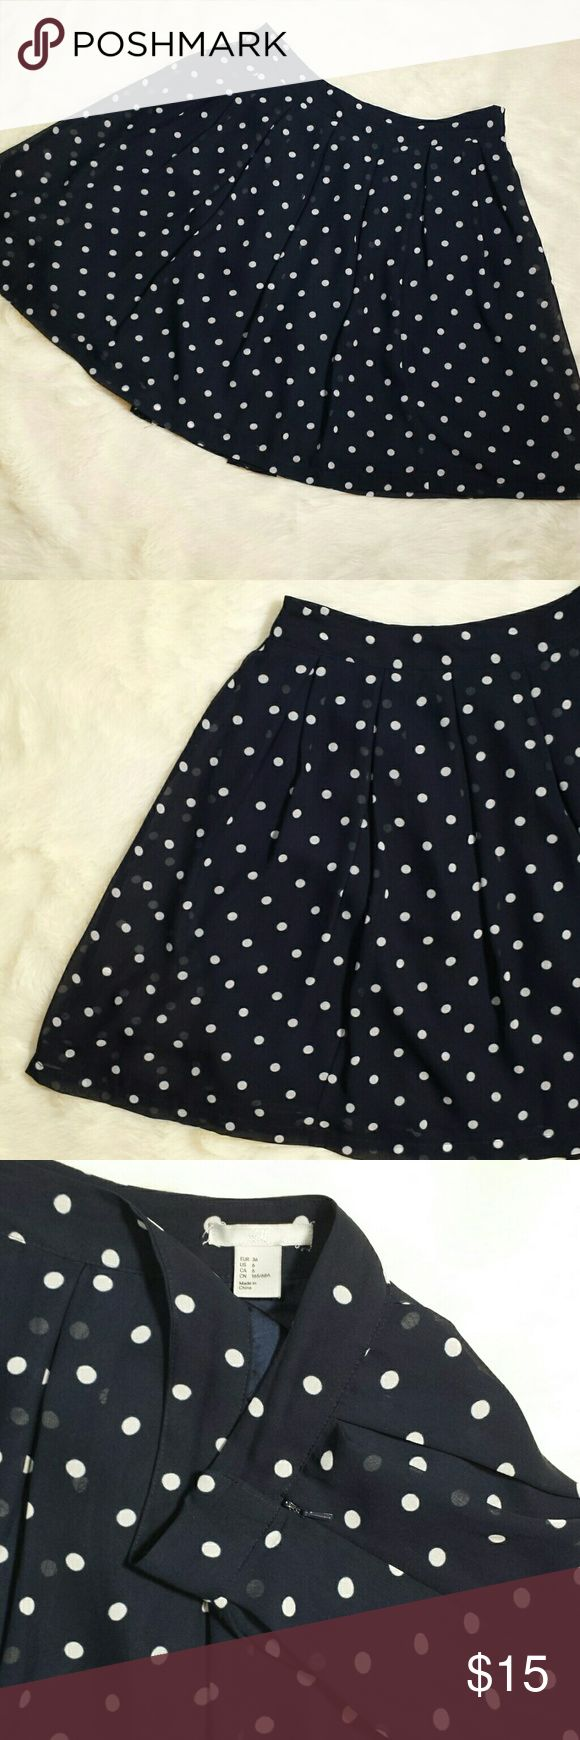 """H&M Polka Dot Pleated Skirt Size 6 Navy blue background with timeless white polka dot pattern. Pleated and a very full skirt. Side zip entry with double clasp closure. Sheer polka dot panel with fully lined solid underneath. Preowned in great condition with no rips, holes, tears or stains. Size 6.   Measurements  Waist 15"""" Length 19.5"""" H&M Skirts A-Line or Full"""